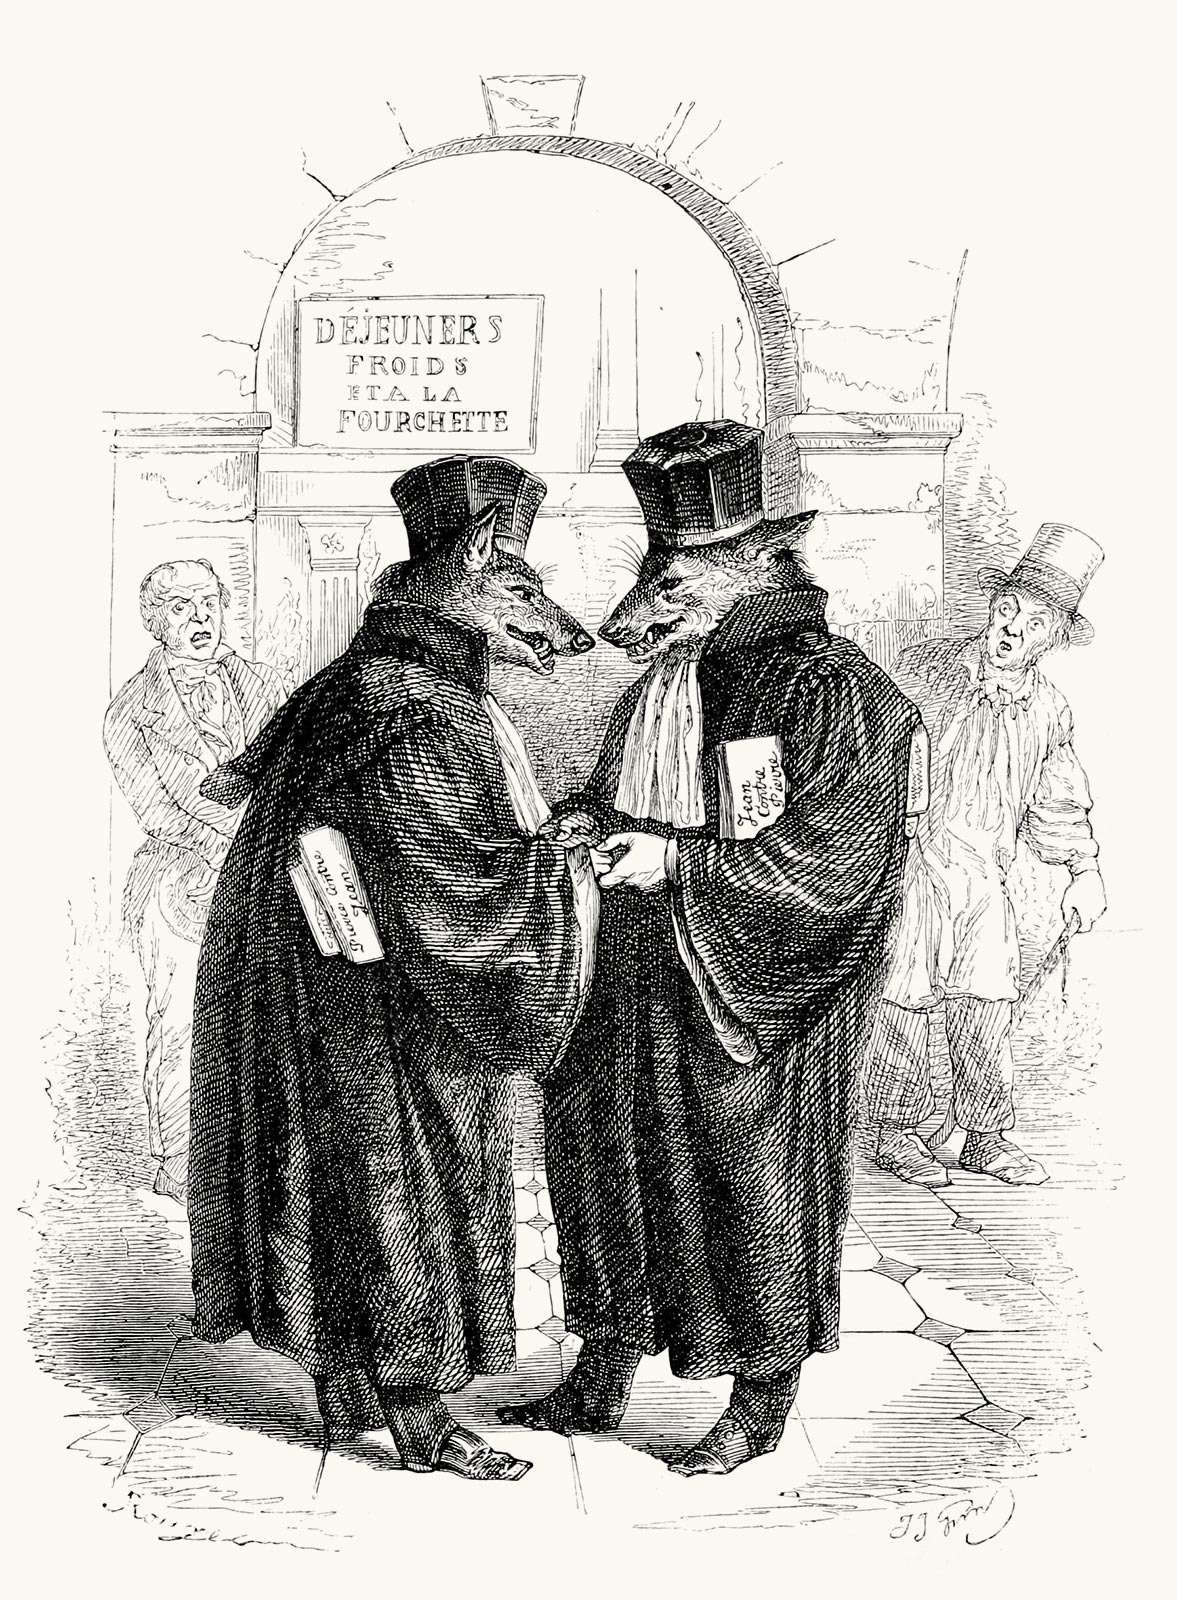 oldbookillustrations :      Les loups ne se mangent pas entre eux (There is honor among thieves).    Jean-Jacques Grandville, from  Cent proverbes (one hundred proverbs) , collective work, Paris, 1845.   (Source:  archive.org )            WebRep        currentVote         noRating   noWeight